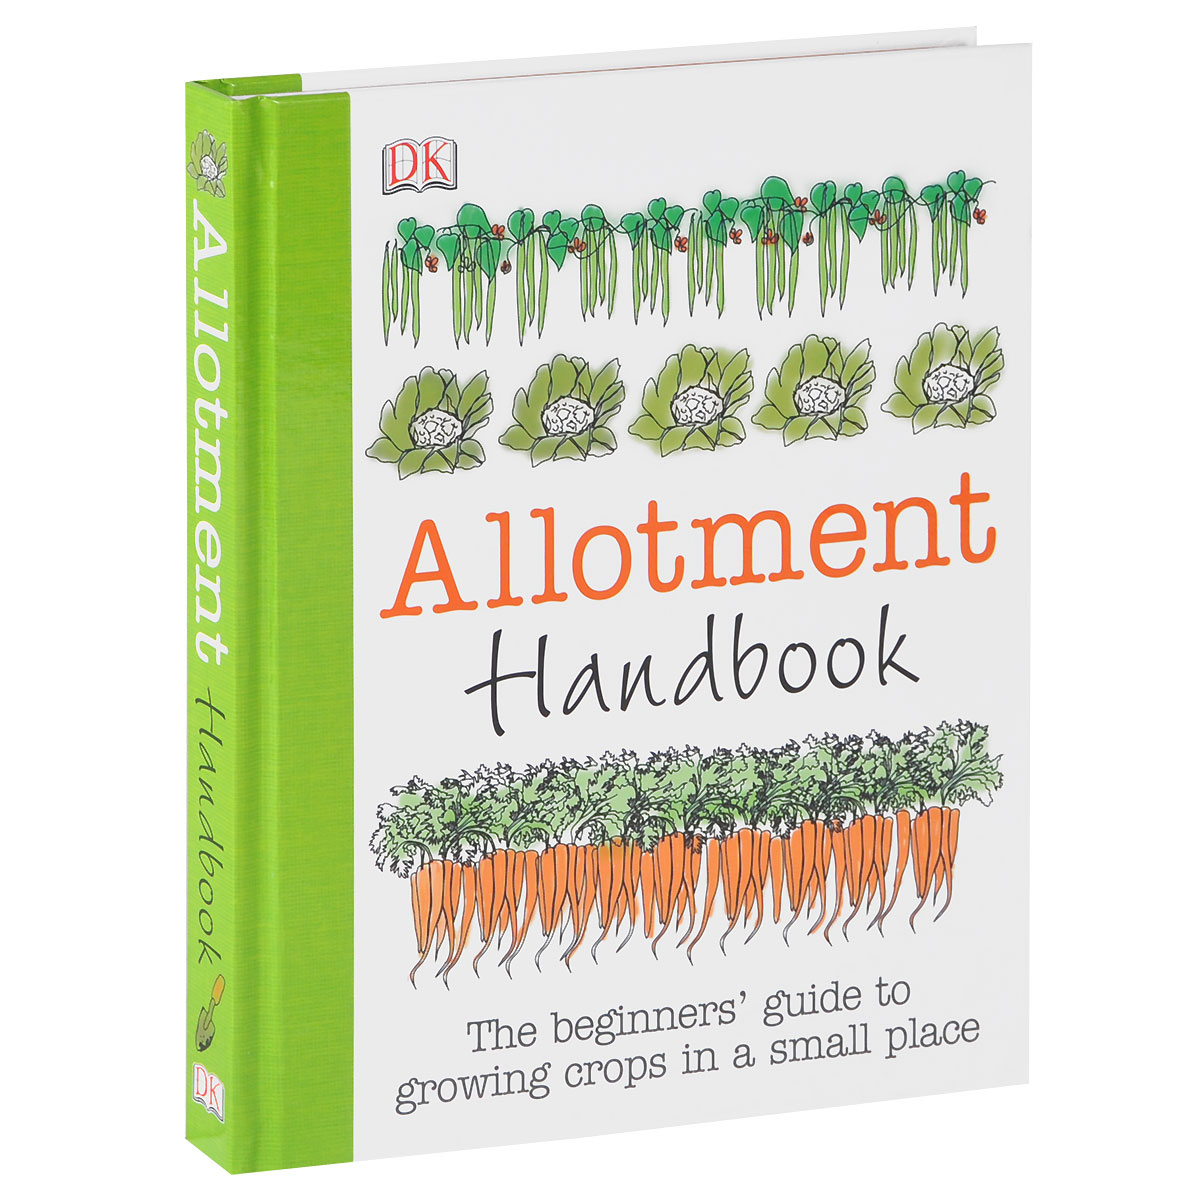 Allotment Handbook: The Beginners' Guide to Growing Crops in a Small Place the family business succession handbook